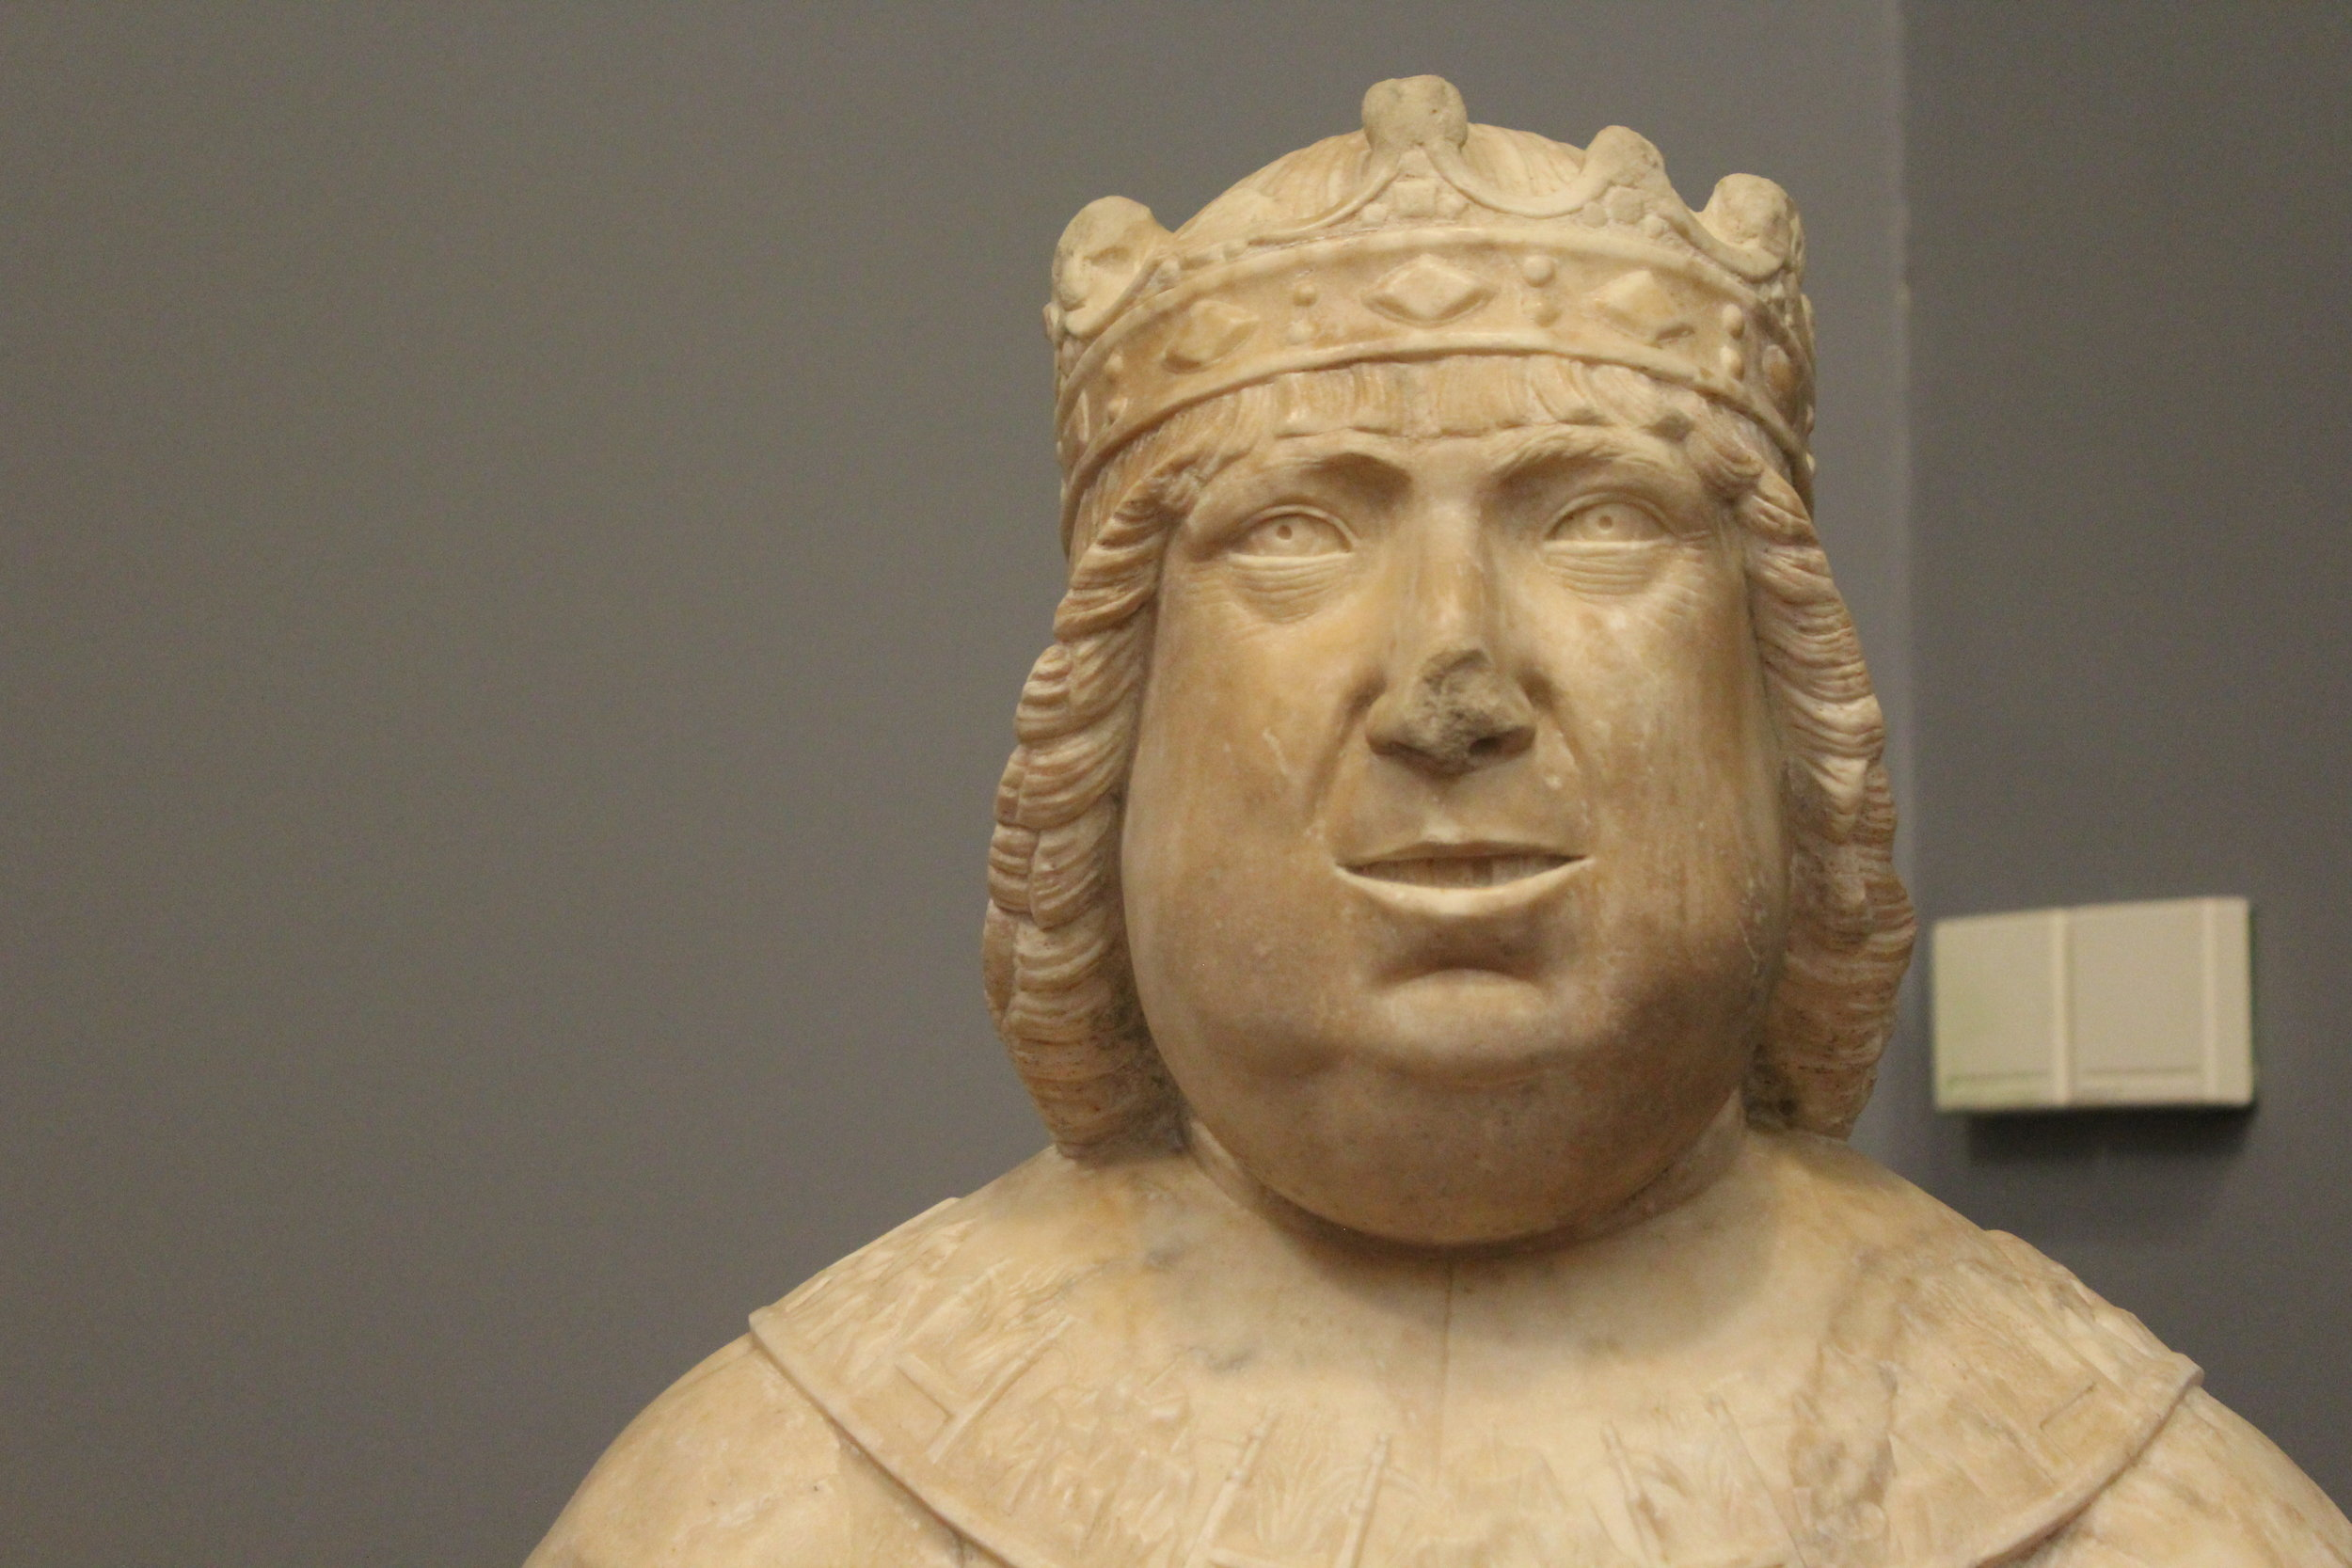 Bust of King Ferrante of Naples